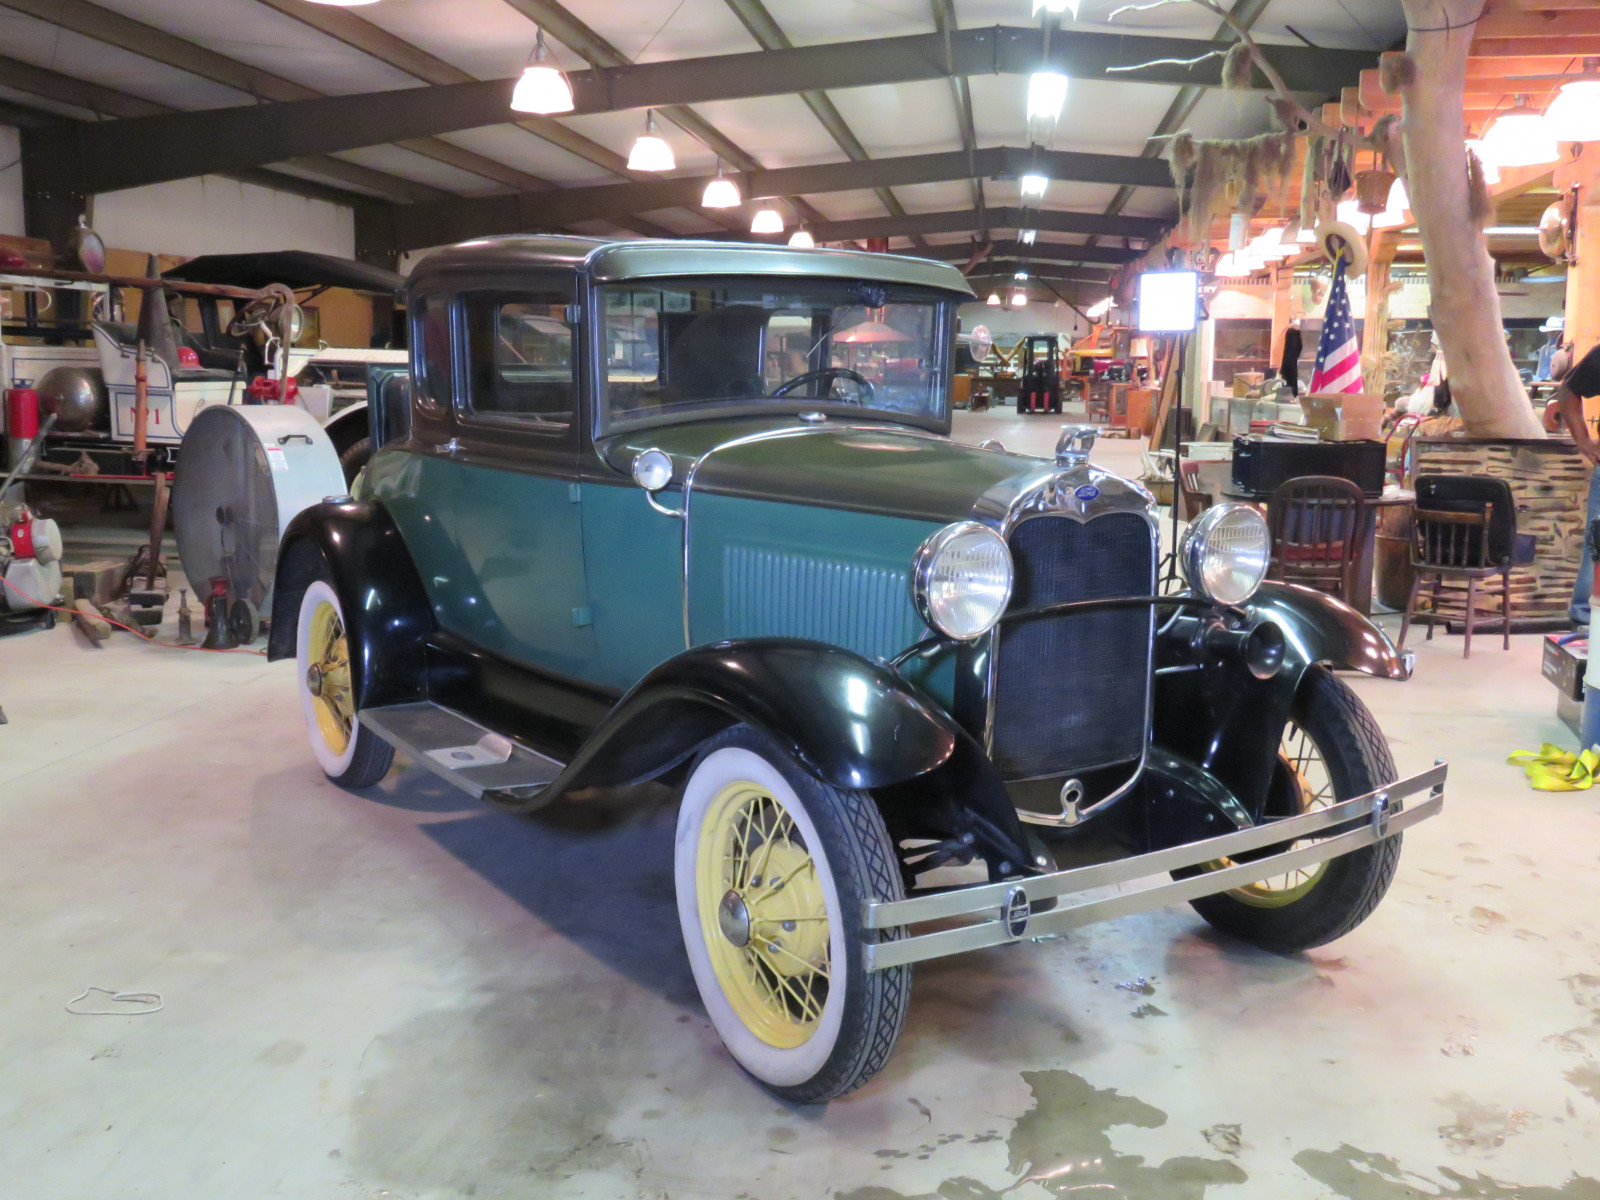 1930 Ford Model A Rumble Seat Coupe - Image 1